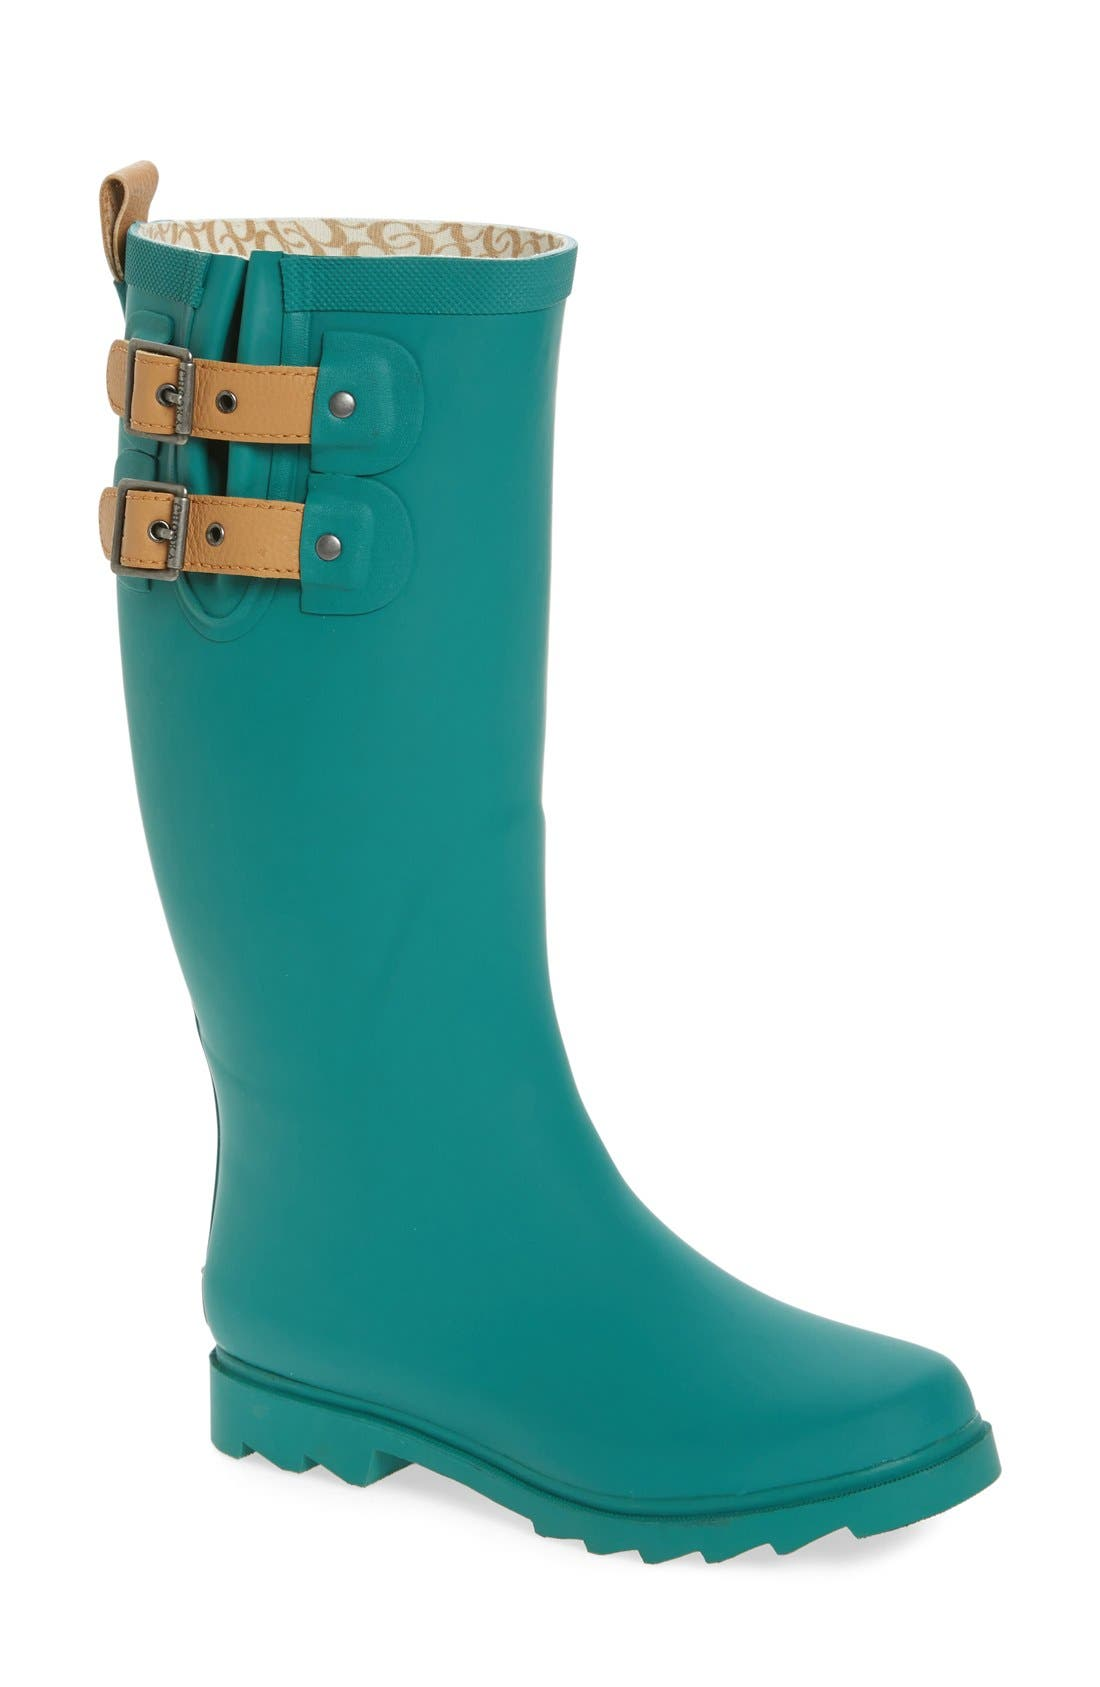 Main Image - Chooka 'Top Solid' Rain Boot (Women)